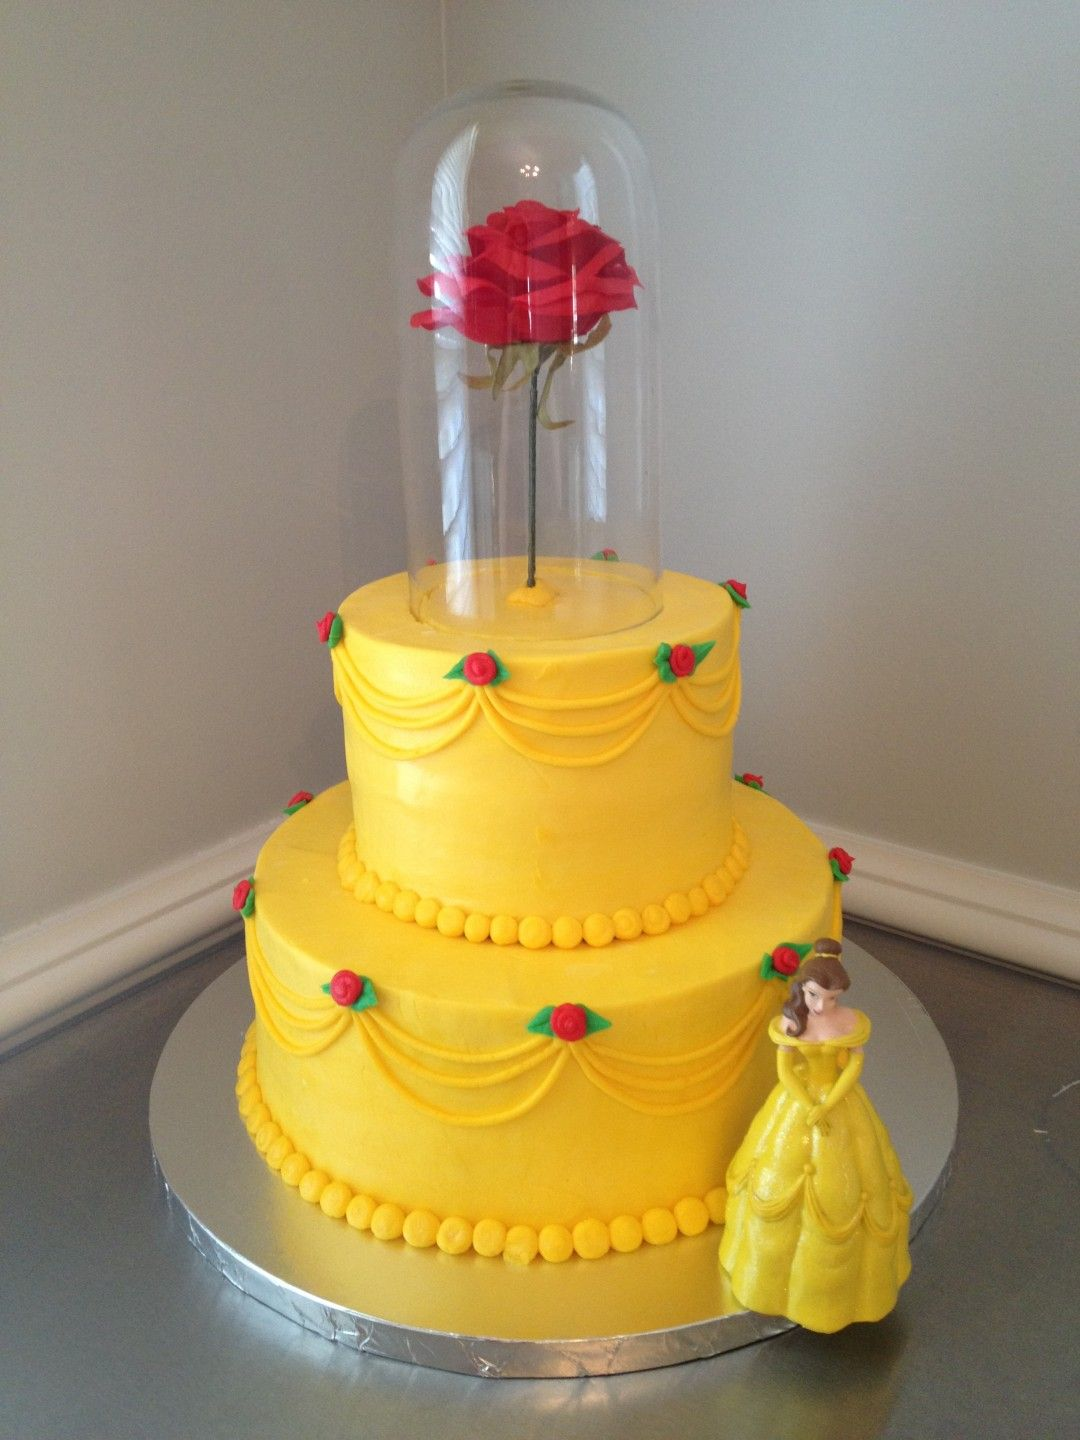 beauty and the beast birthday sheet cake ; 042fff189911f8dca7be86027c8808de